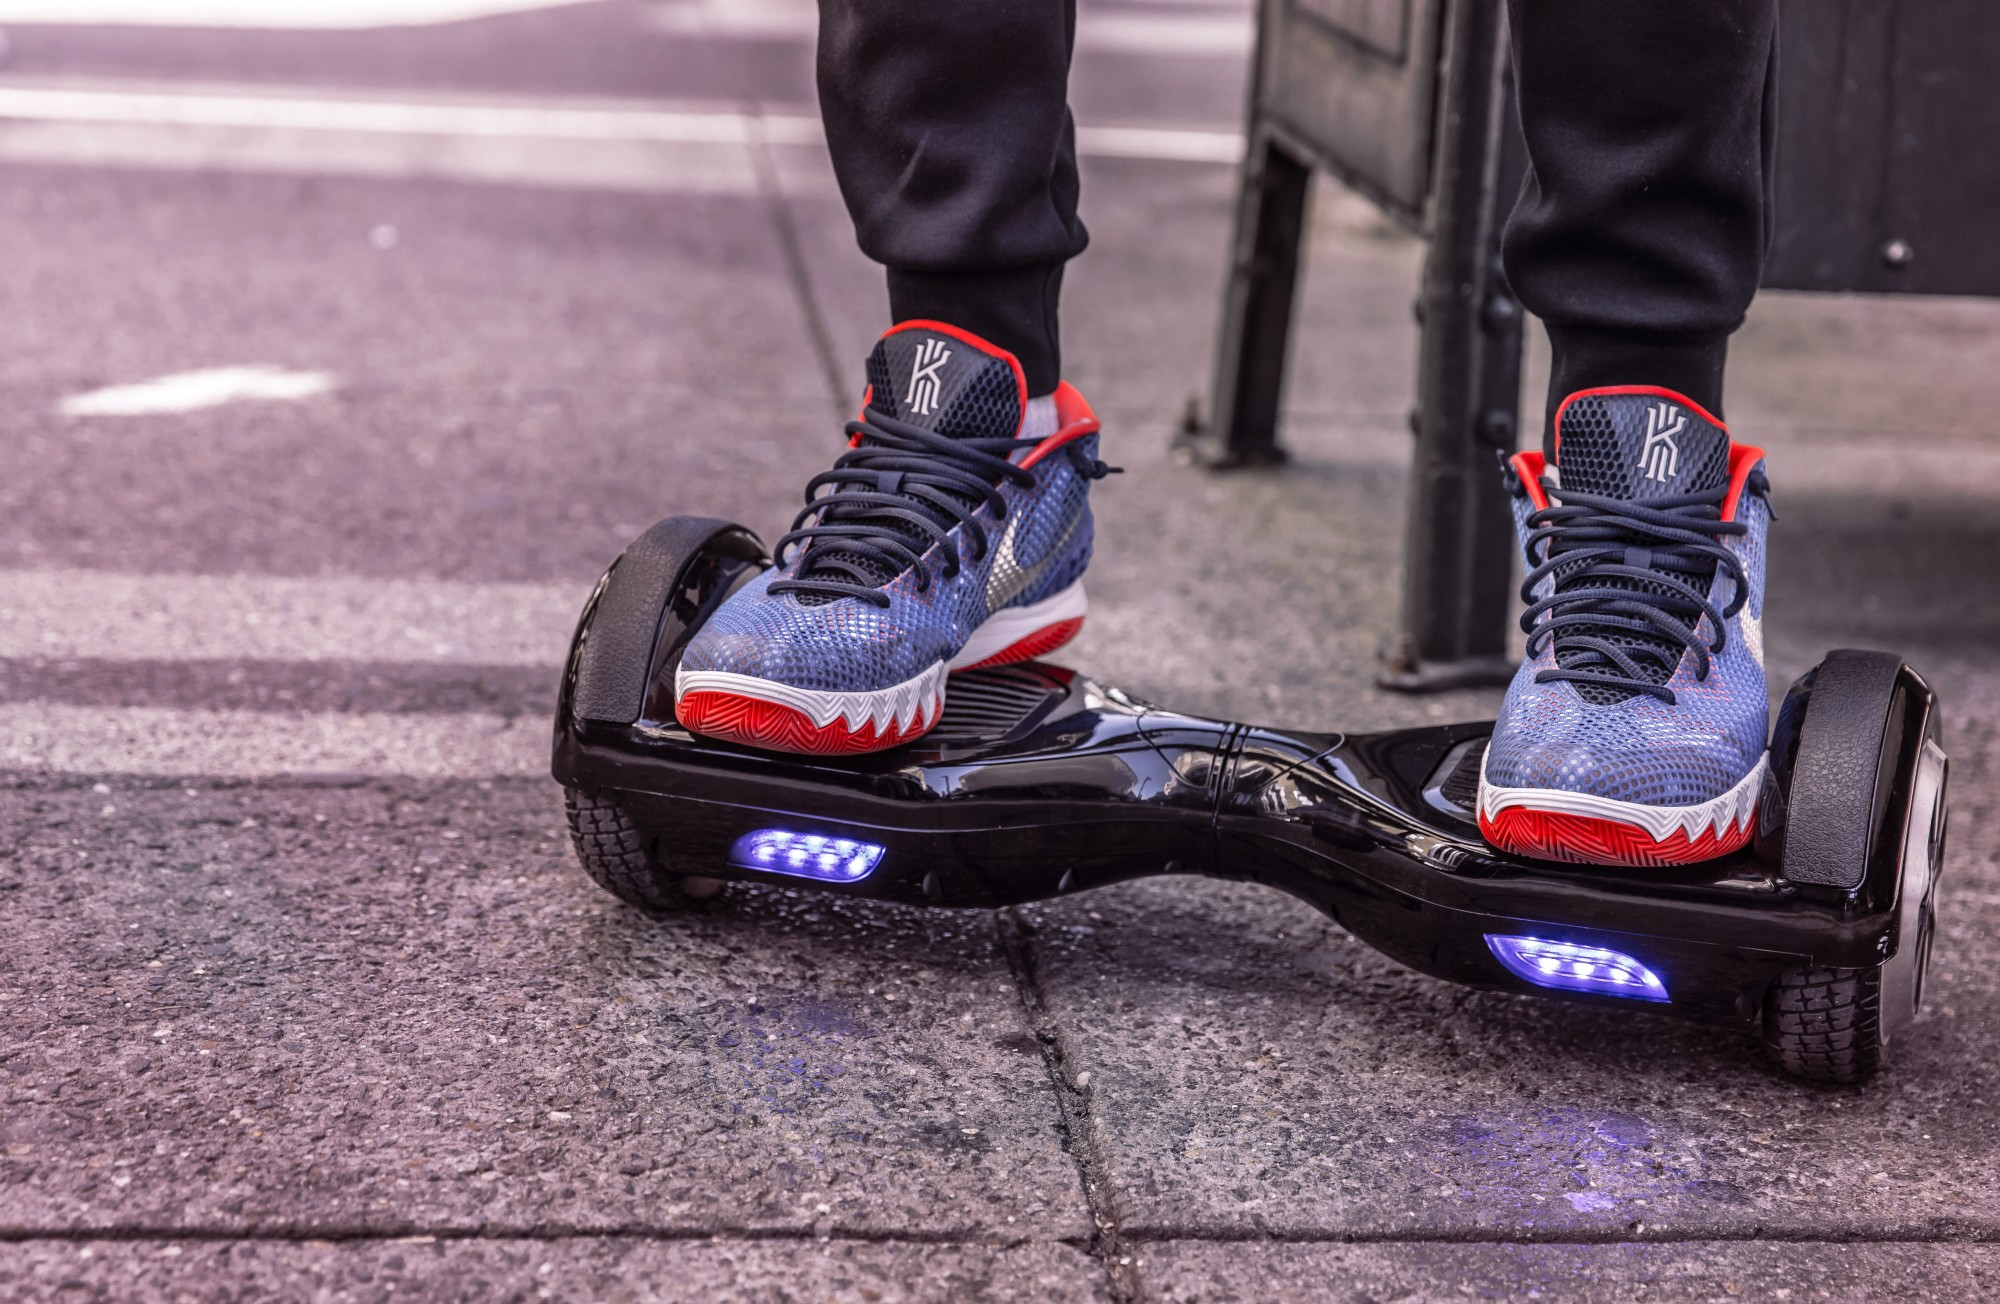 Where Can I Buy A Hoverboard >> Where Can I Buy A Hoverboard In Oakville